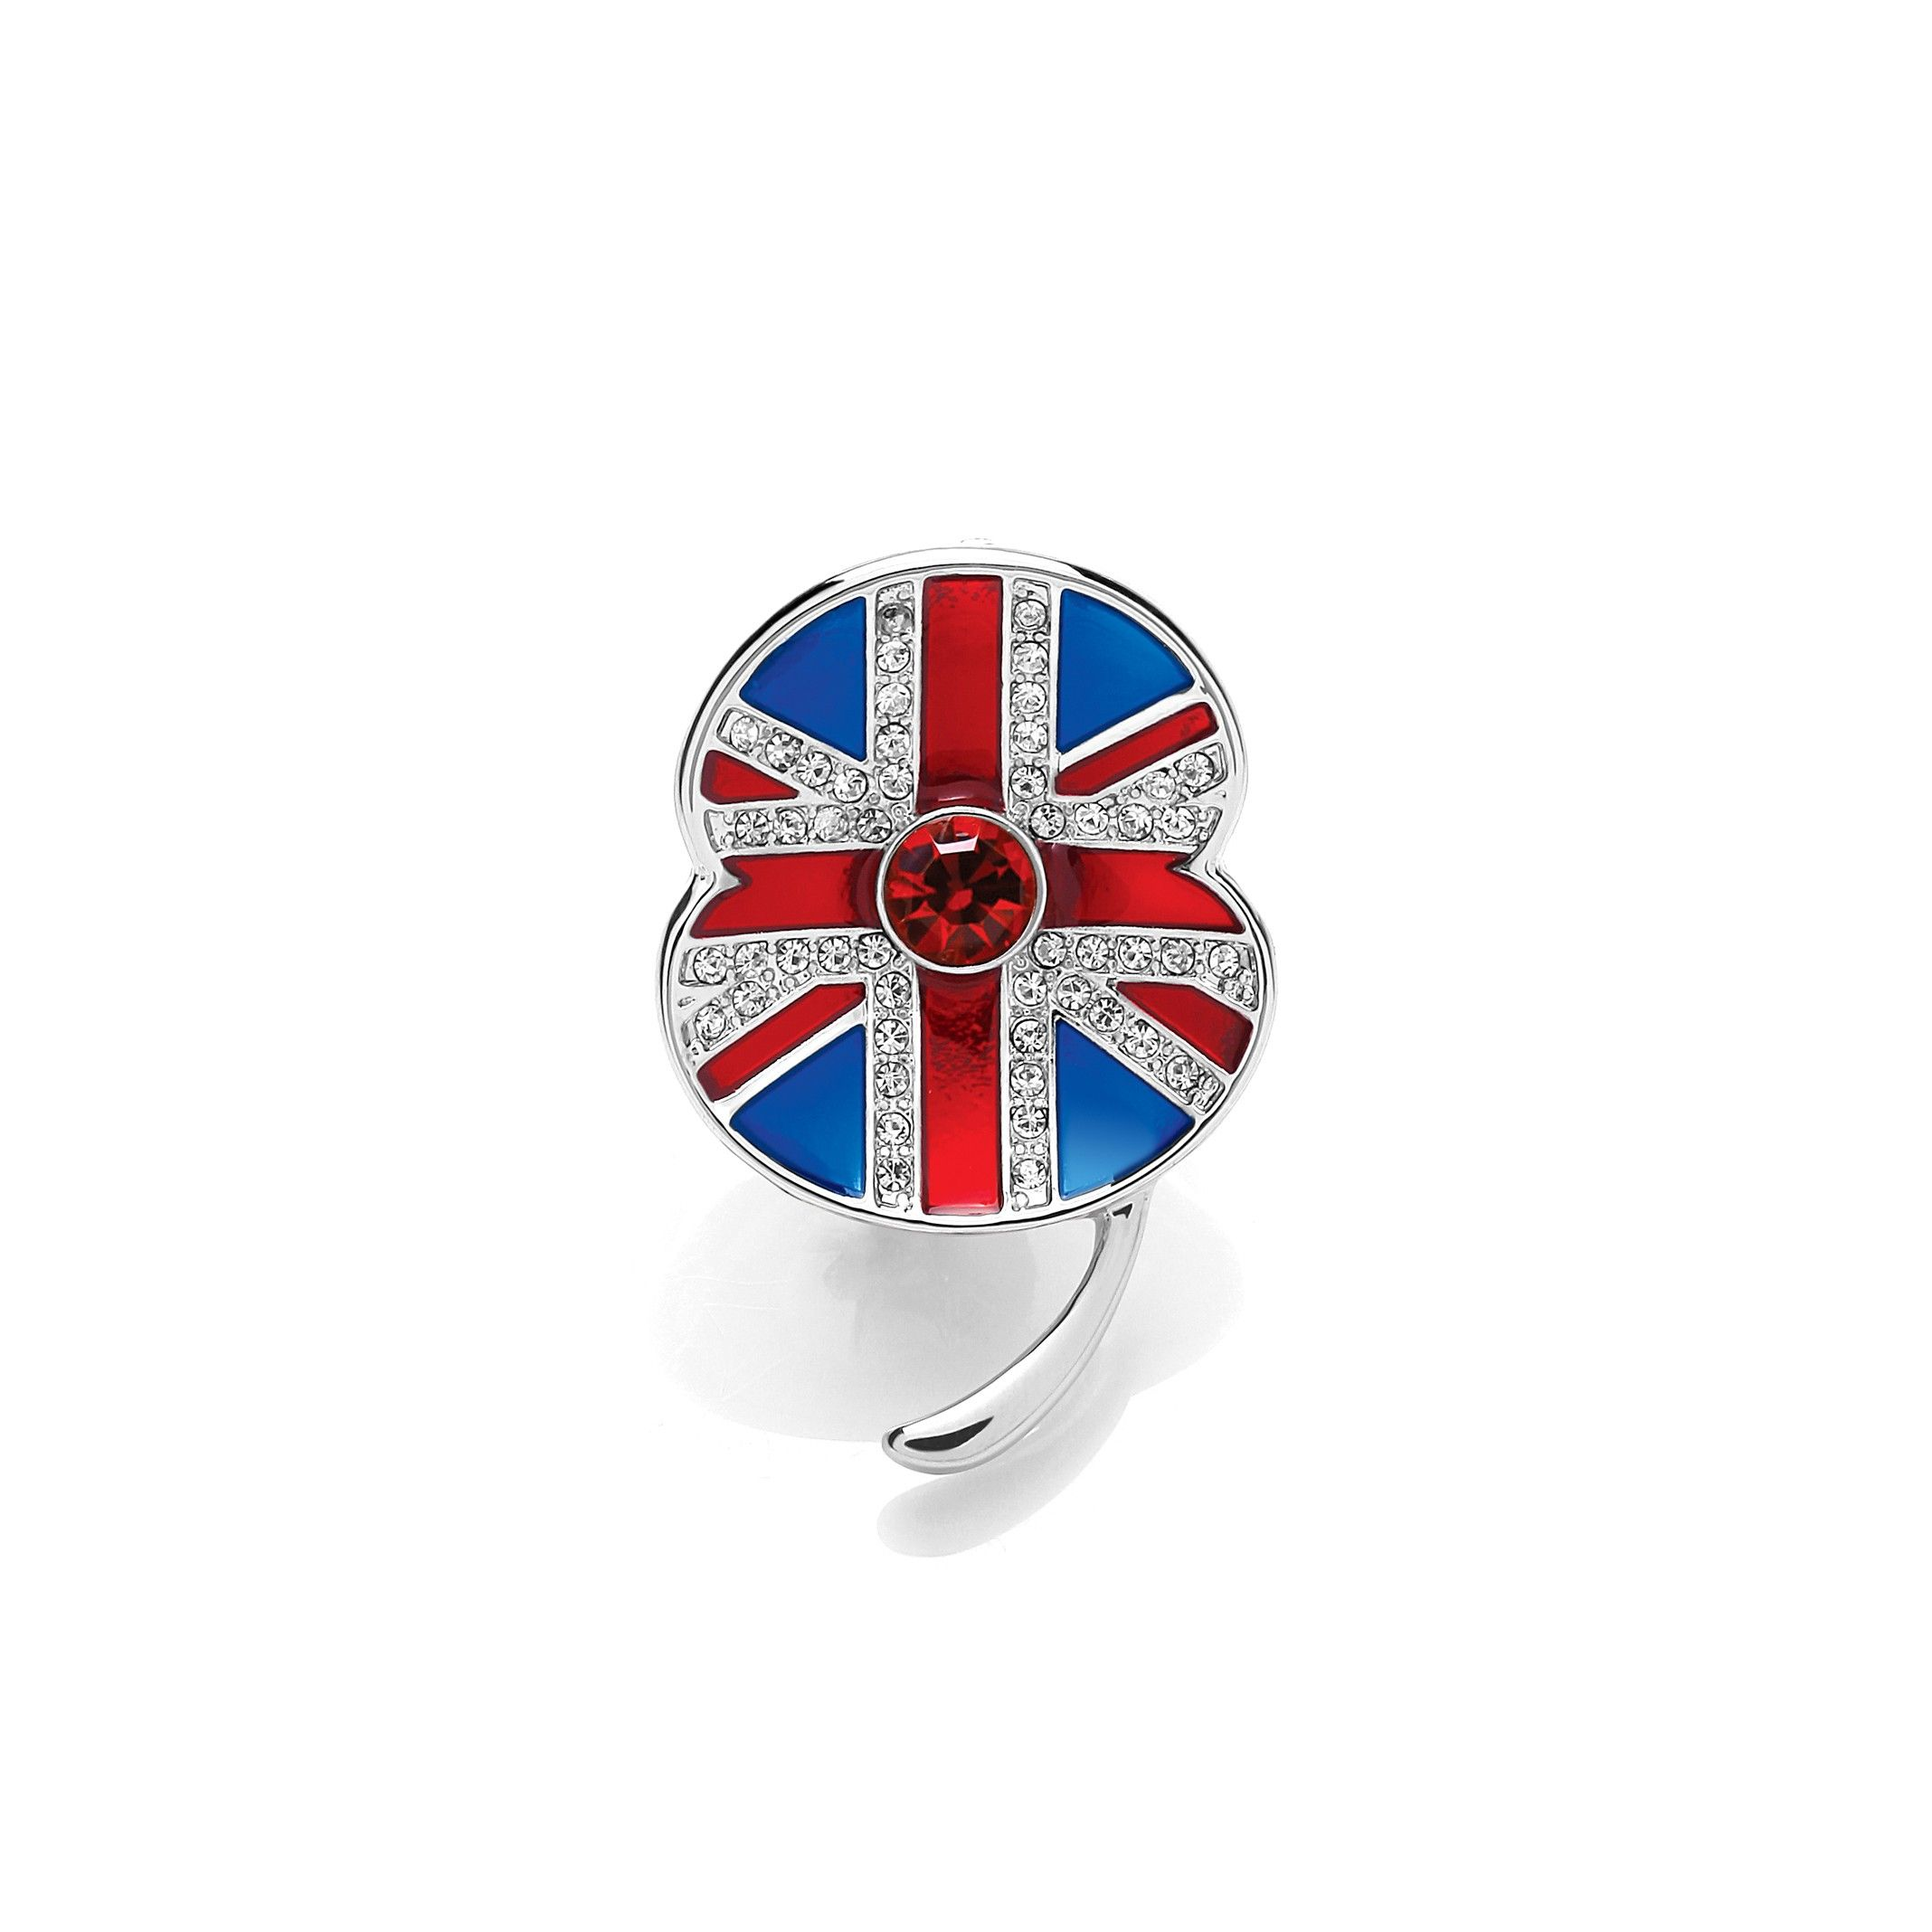 The Buckley Union Flag Poppy Brooch Poppy brooches